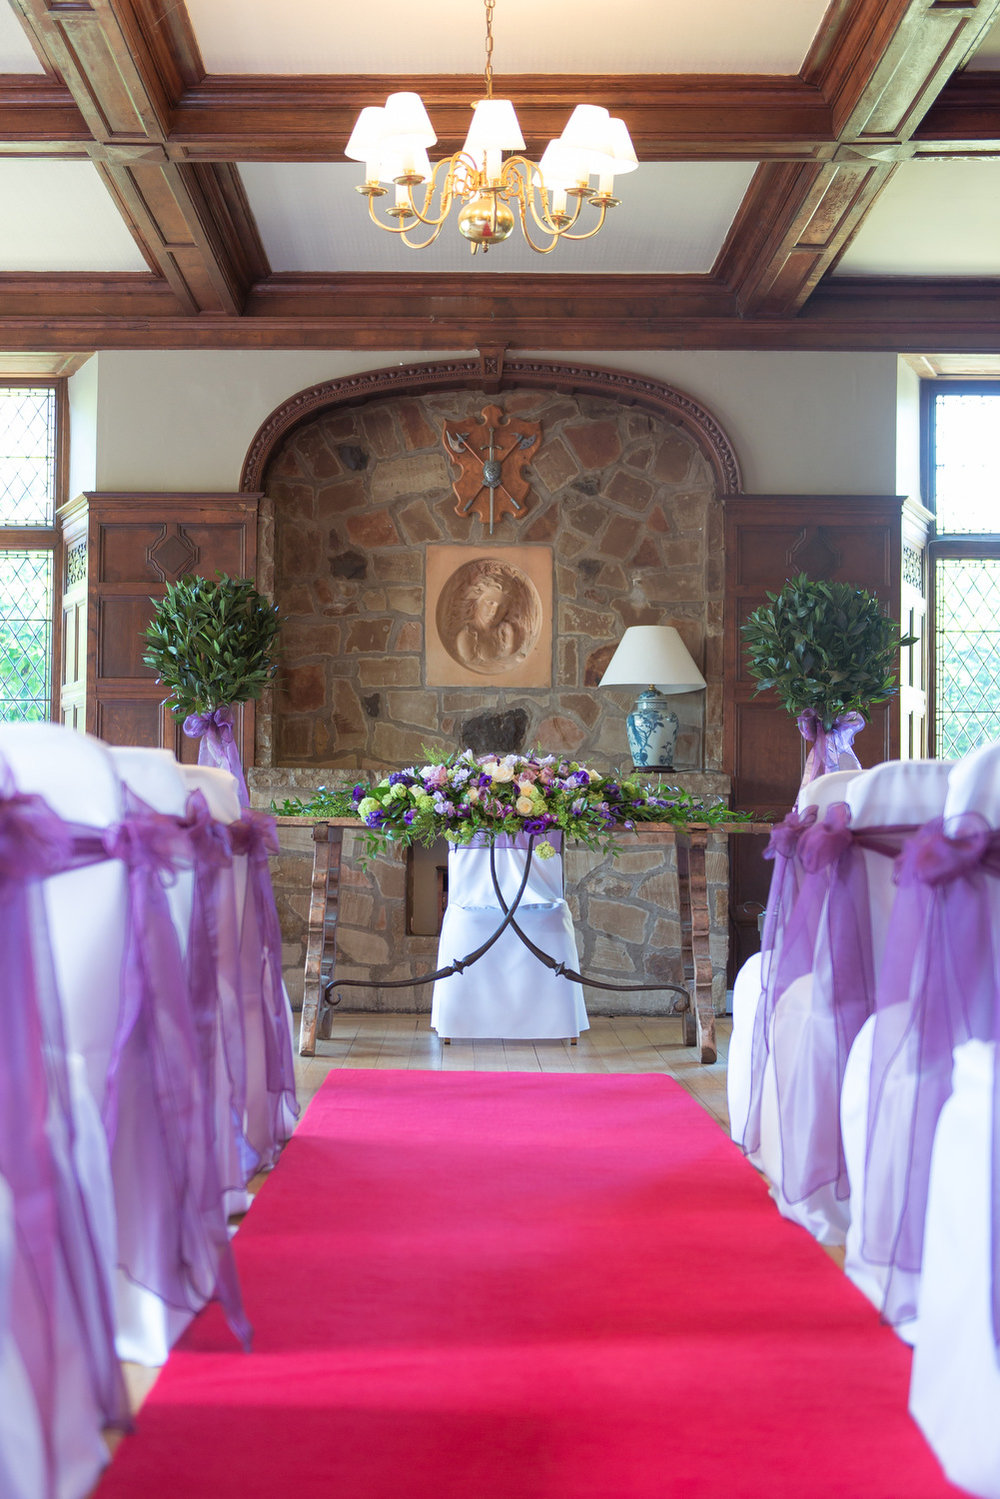 charnwood_weddings_Rothley_Court_Kelly_Rich154.JPG